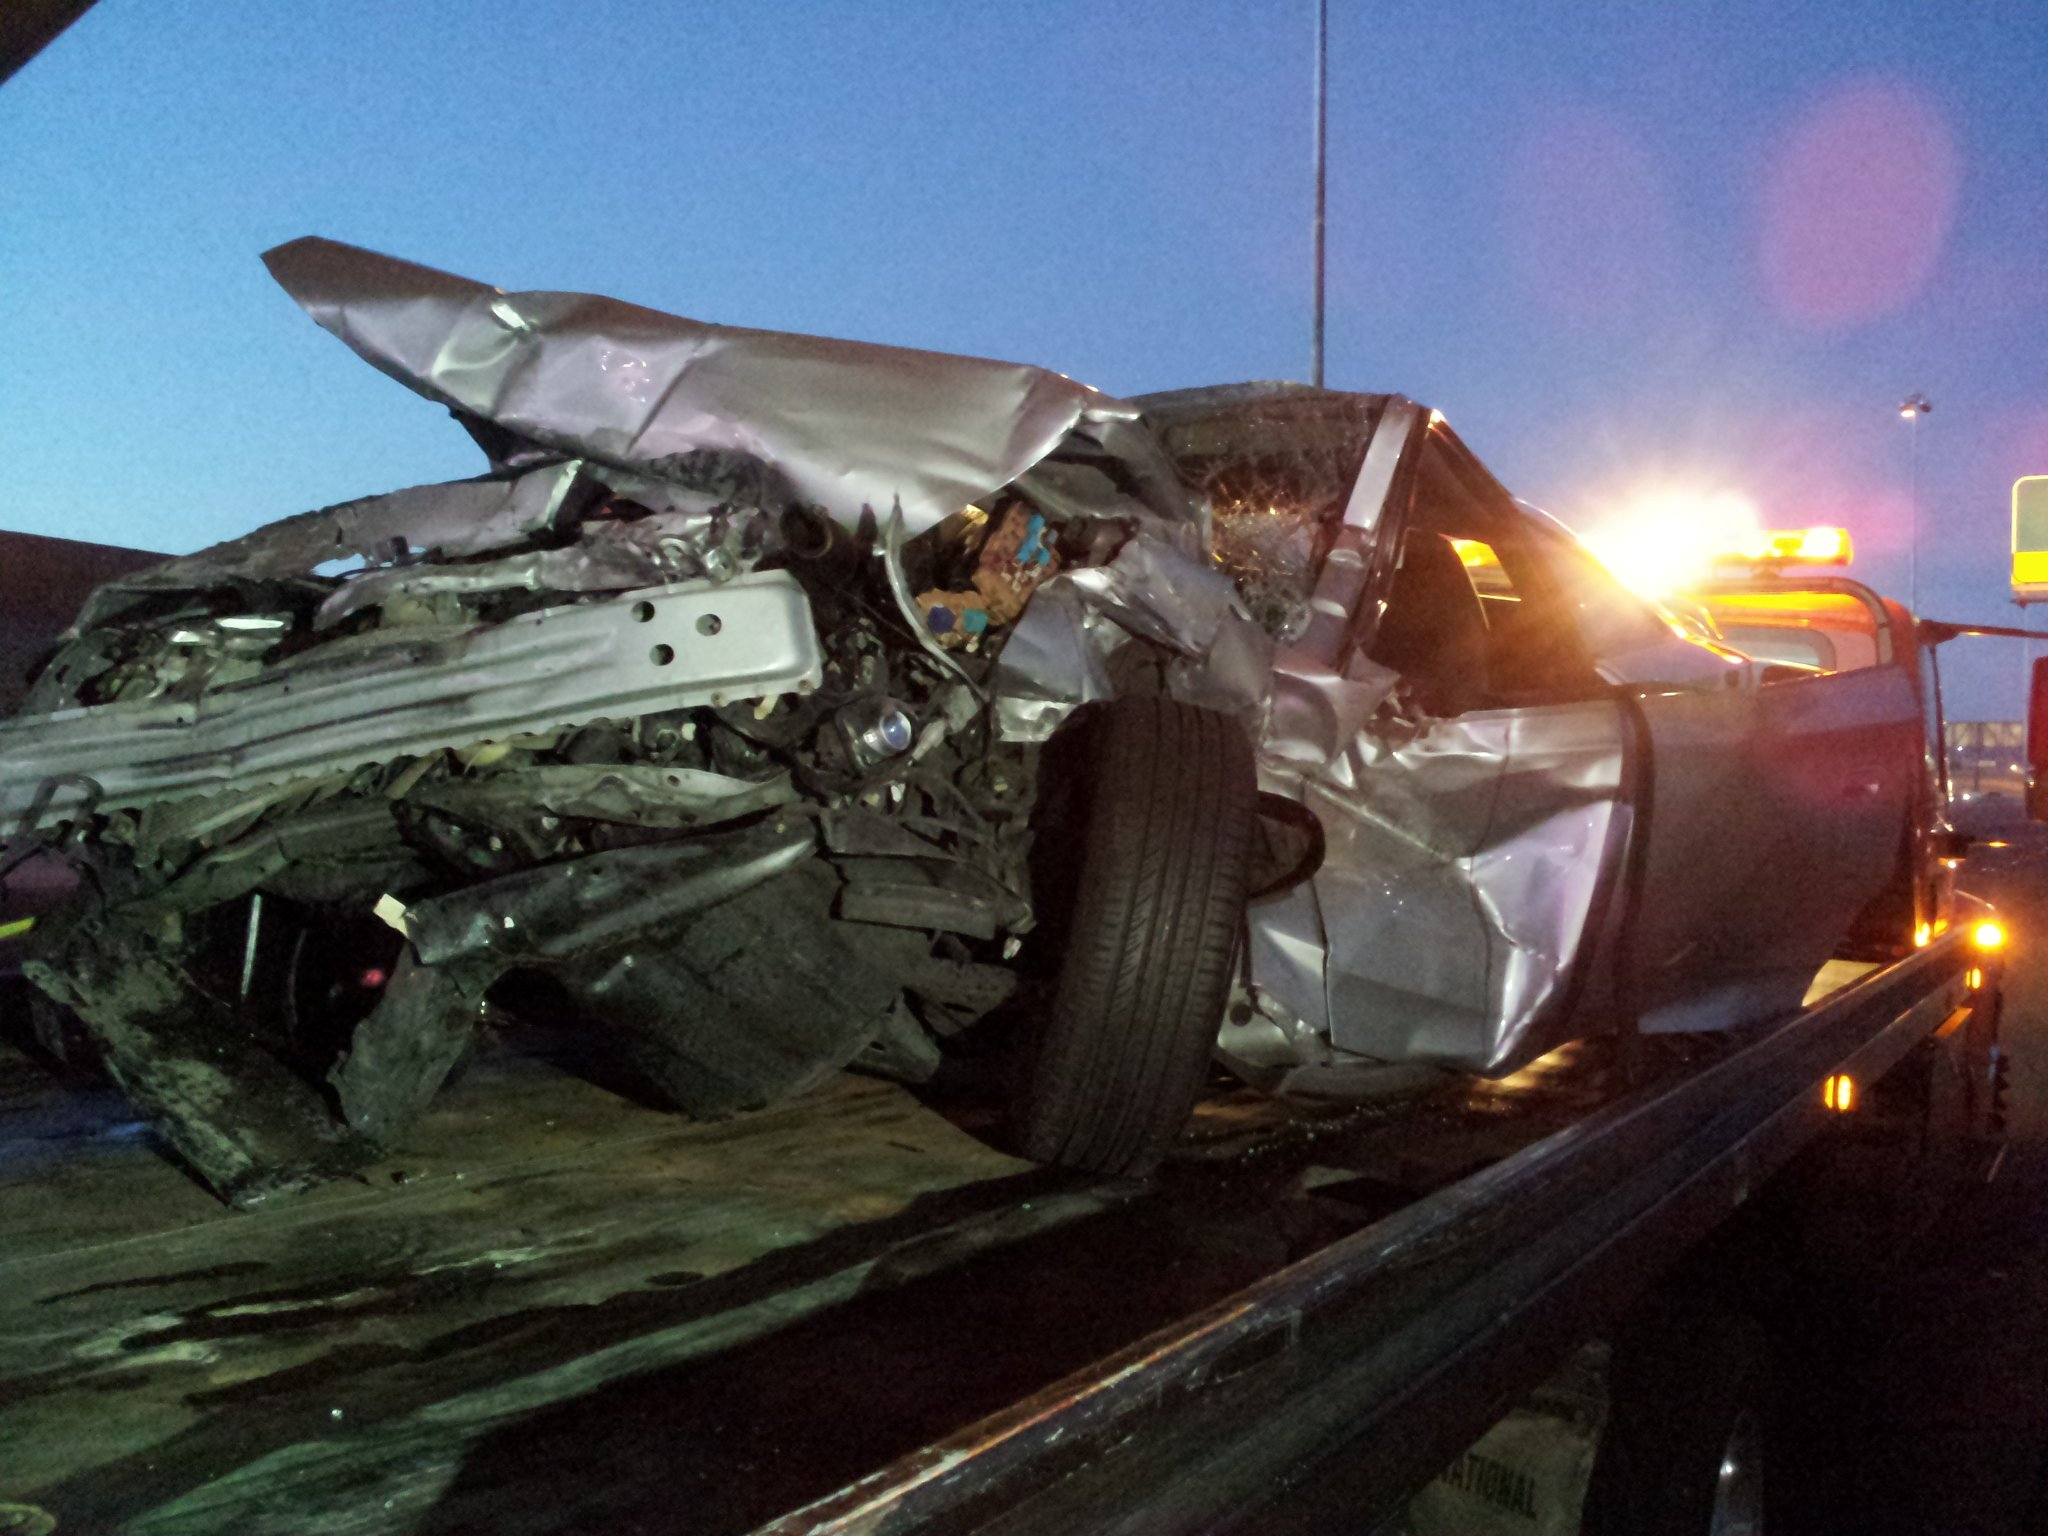 Toyota Celica was traveling at a high rate of speed before the accident (Arron Healy/FOX5)